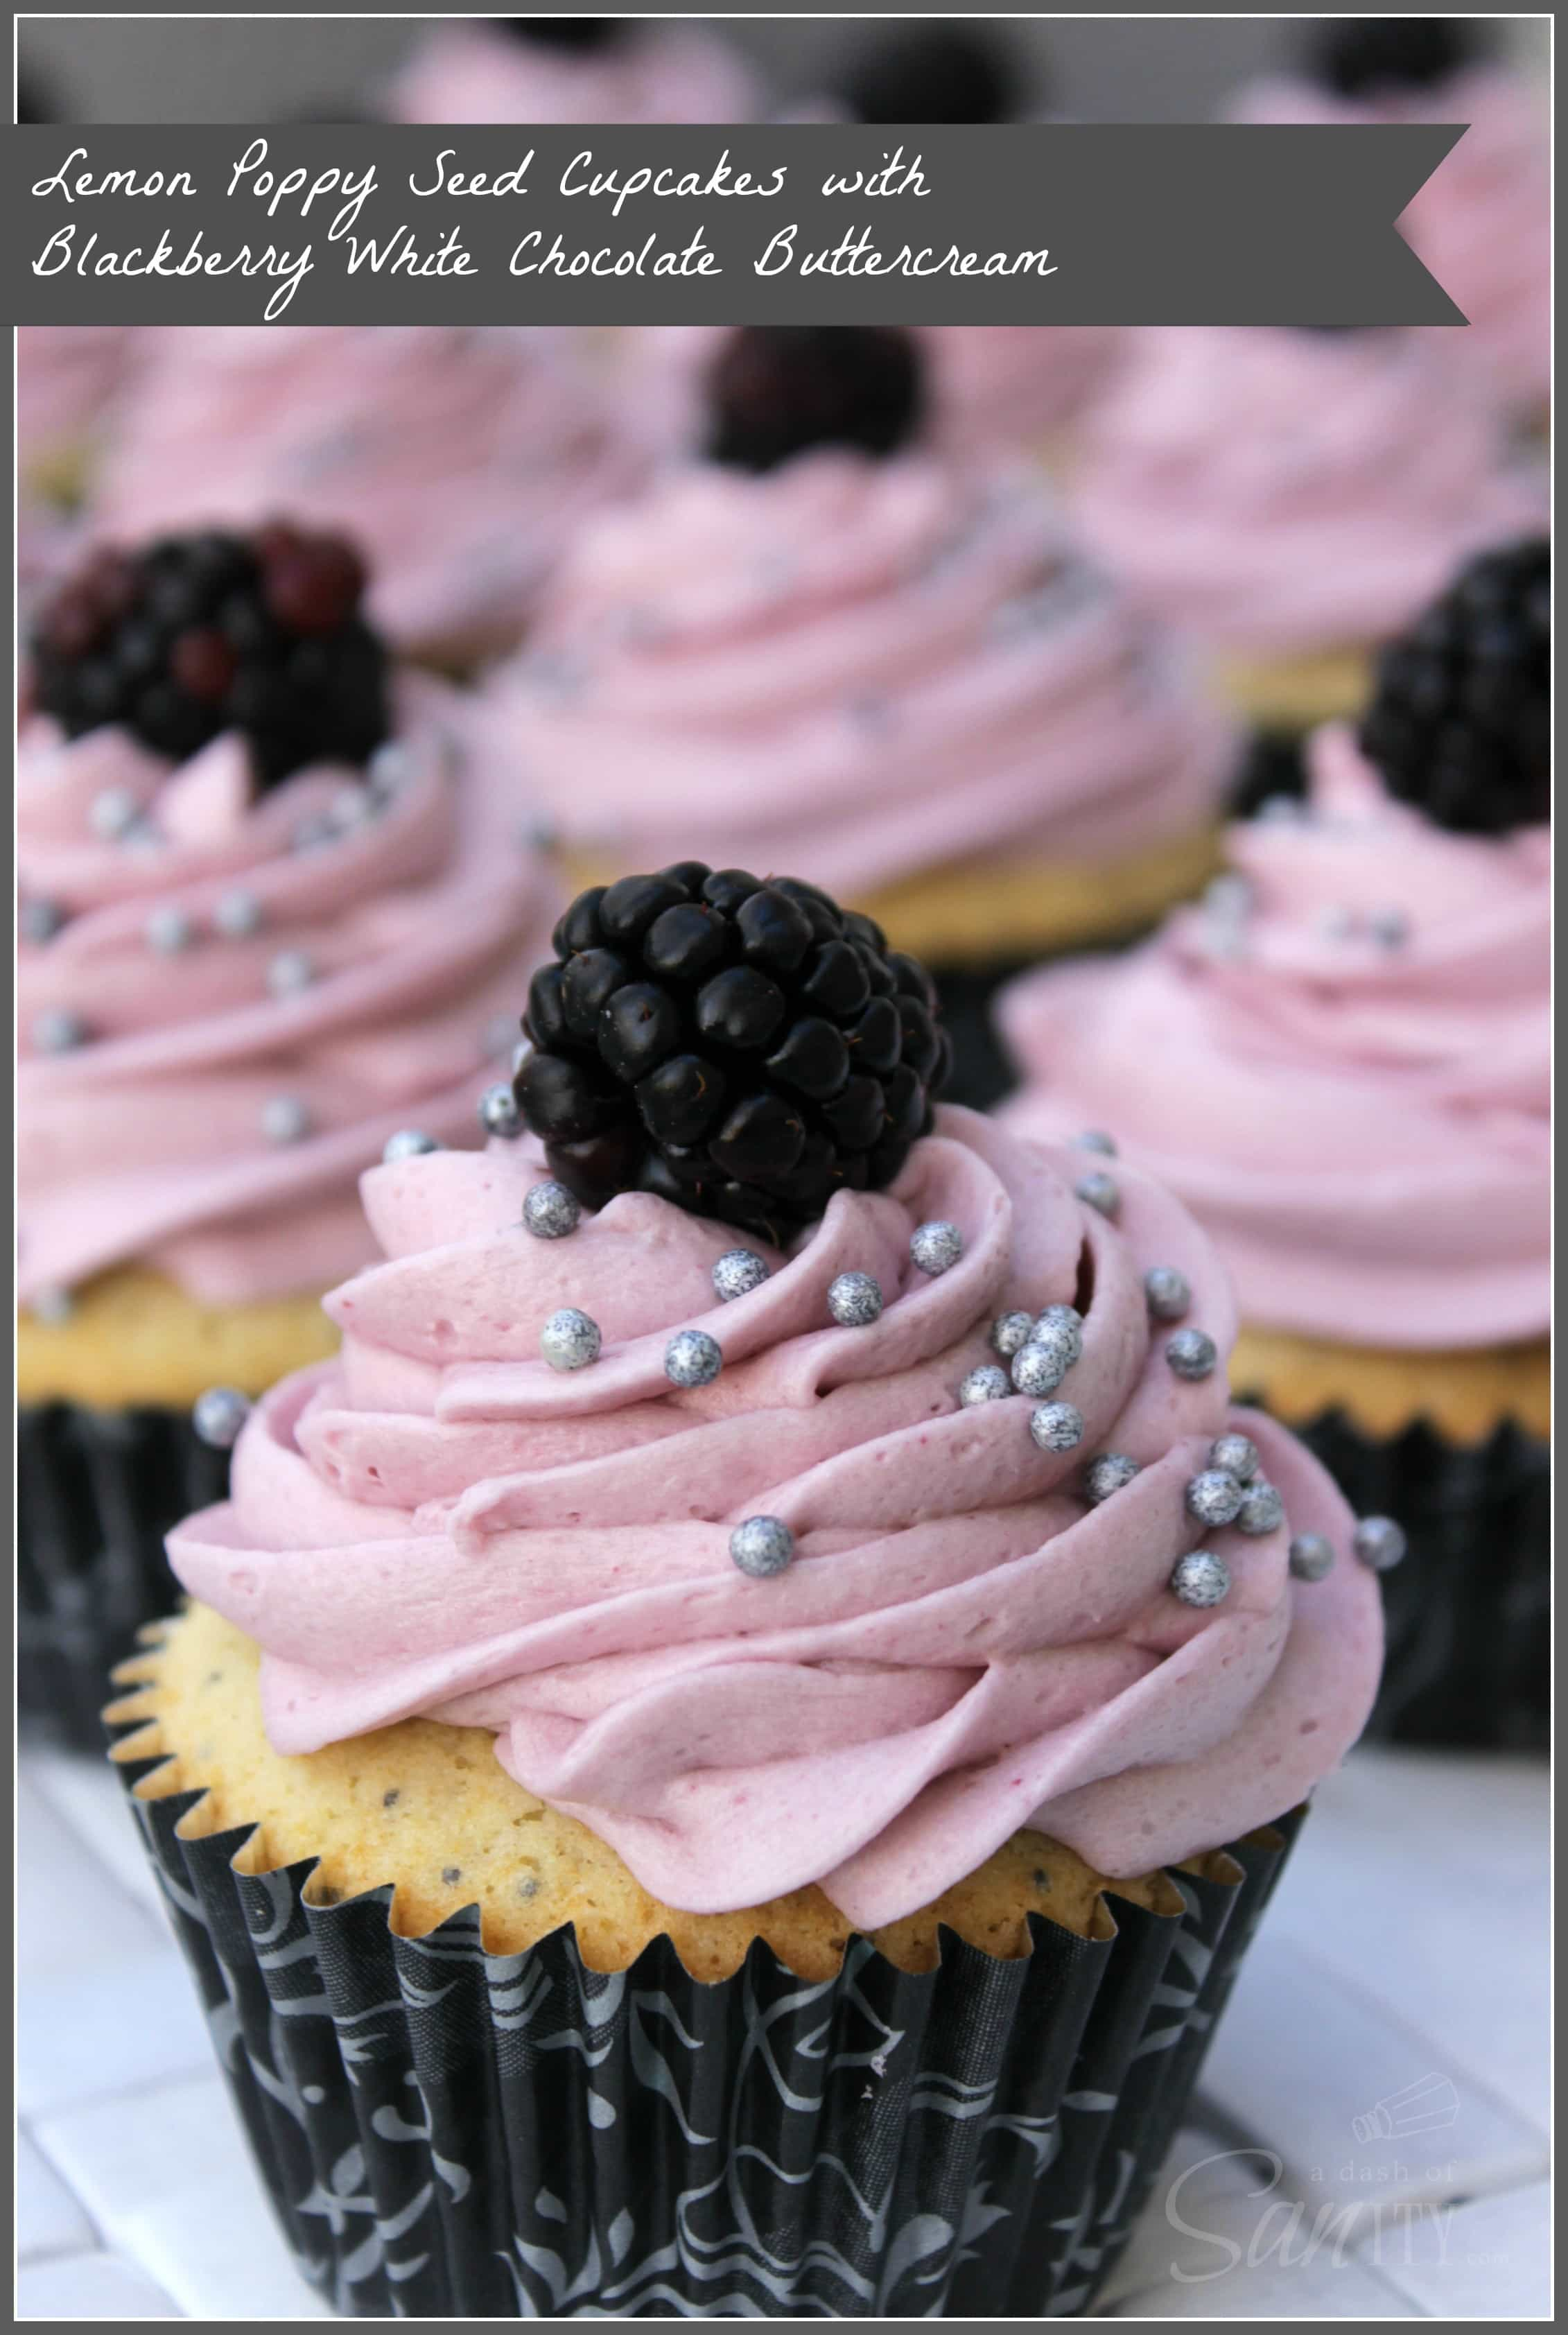 Lemon-Poppy Seed Cupcake with Blackberry White Chocolate Buttercream piped, with a blackberry and silver round sprinkles